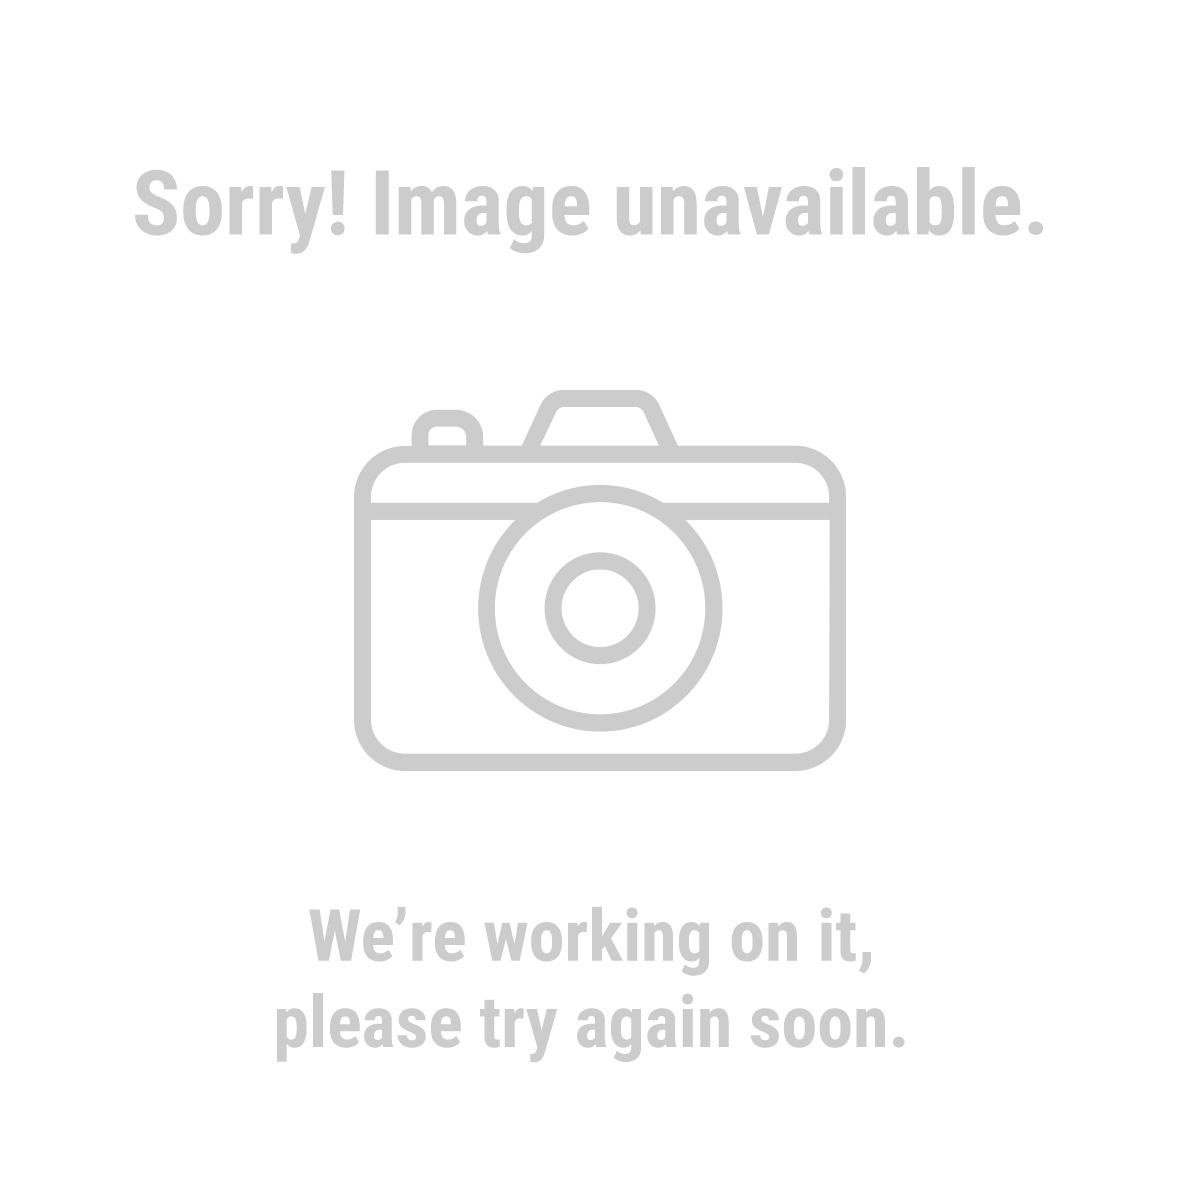 Haul-Master® 96428 Safety Ramp with Ramp Support